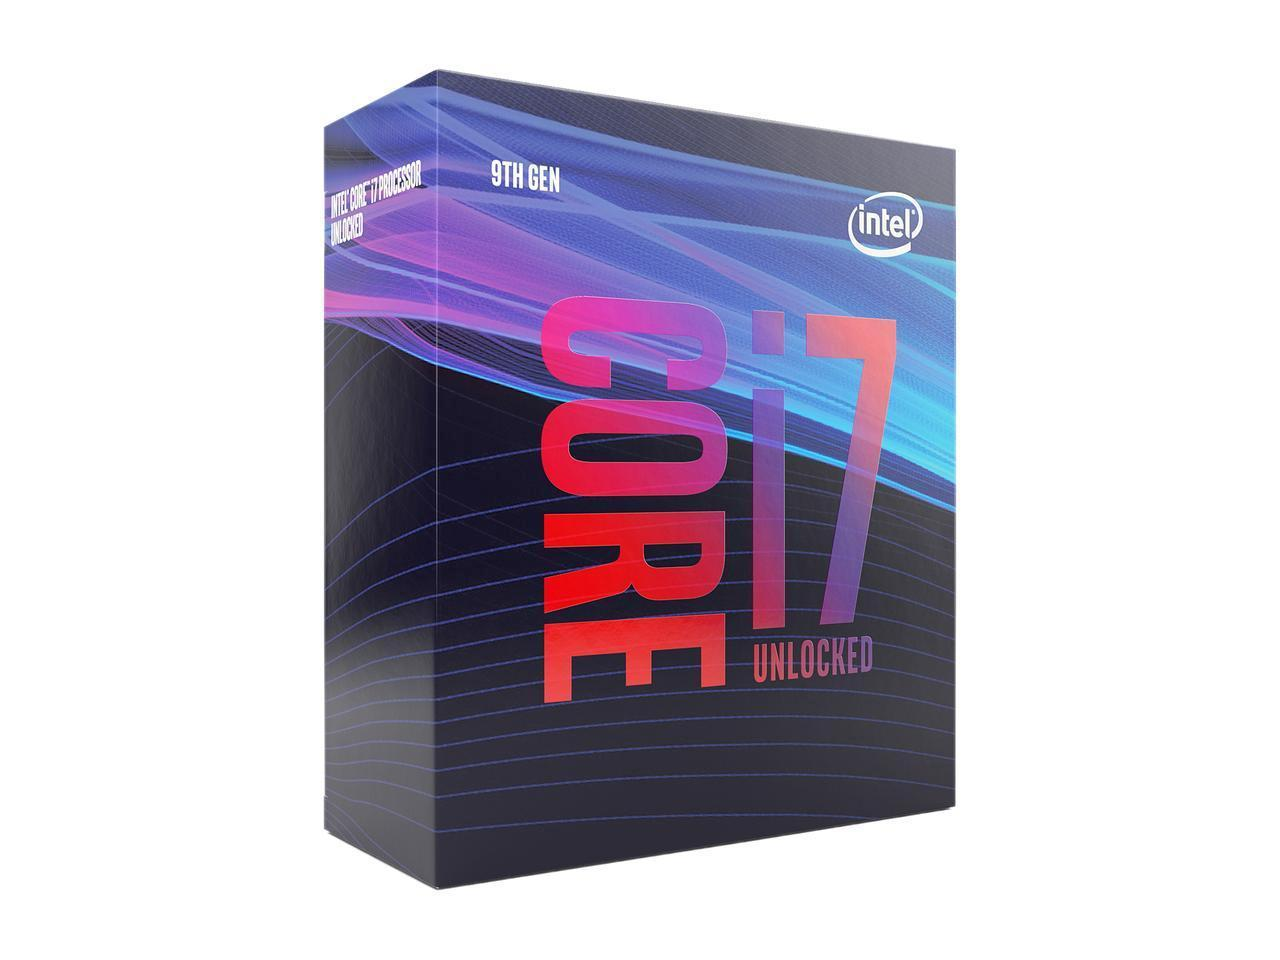 Процесор Intel Coffee Lake Core i7-9700K 3.60GHz (up to 4.90GHz), 12MB, 95W,  LGA1151 (300 Series)-3